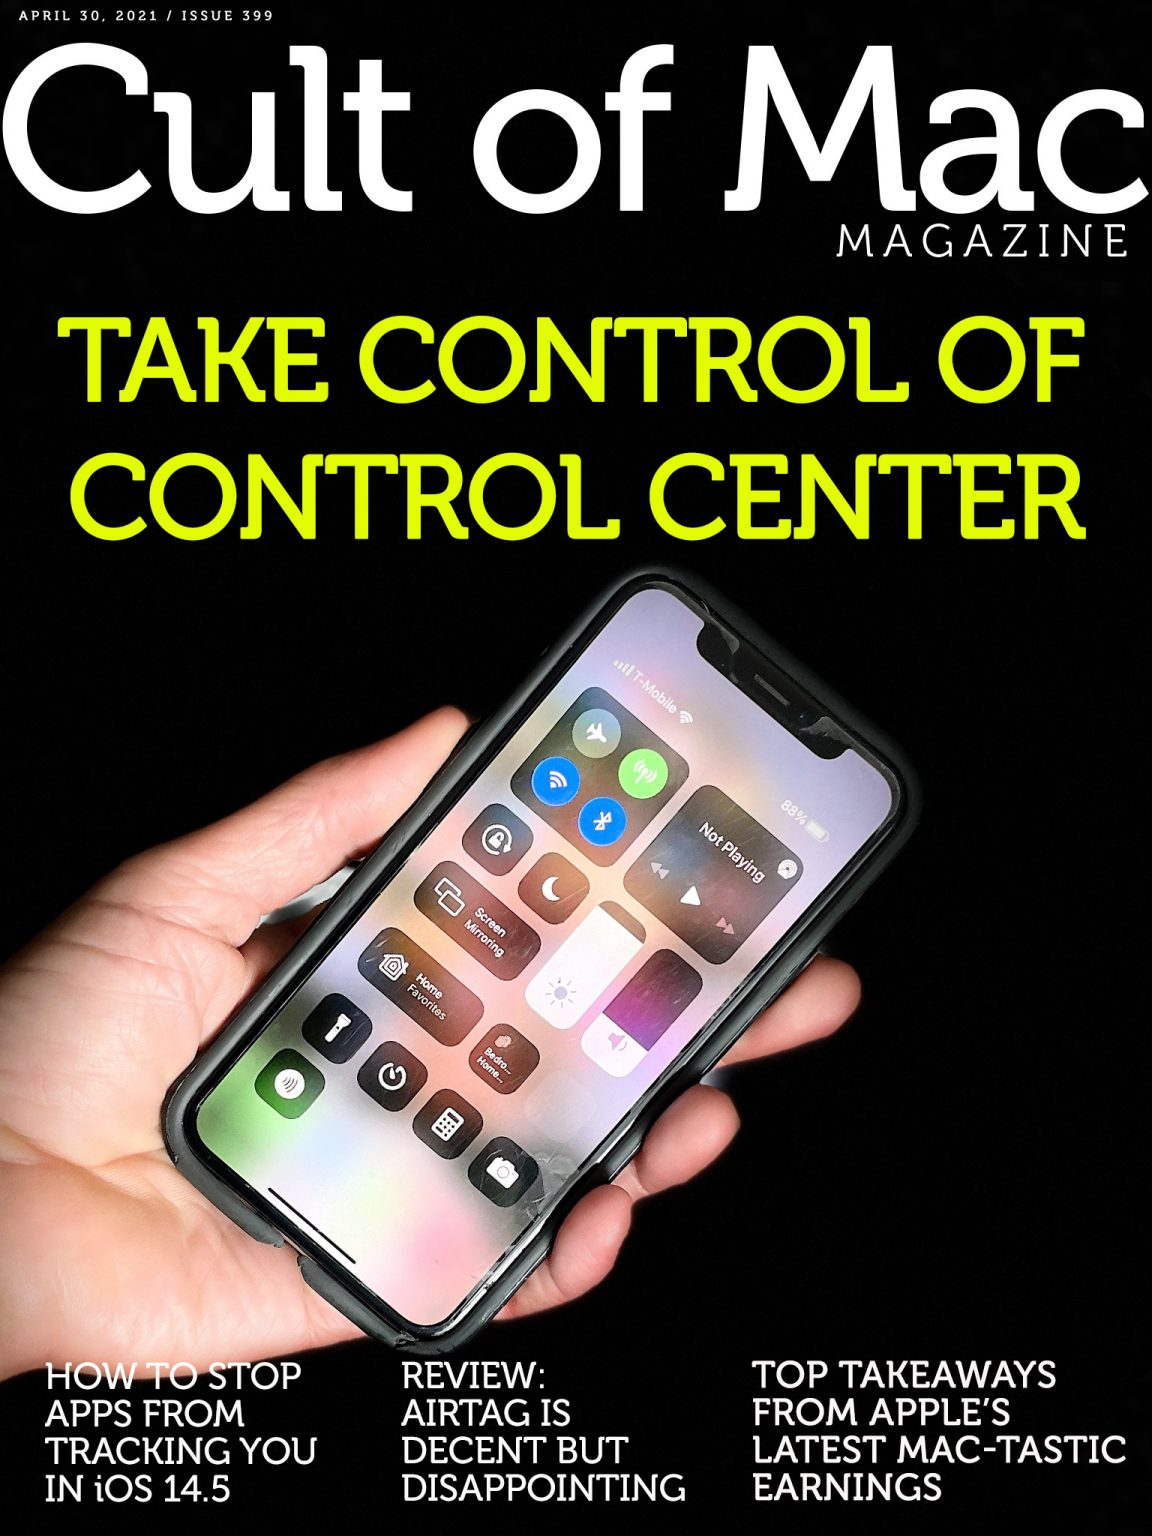 Take control of Control Center: Squeeze some extra utility out of your Apple gear with these Control Center tips.